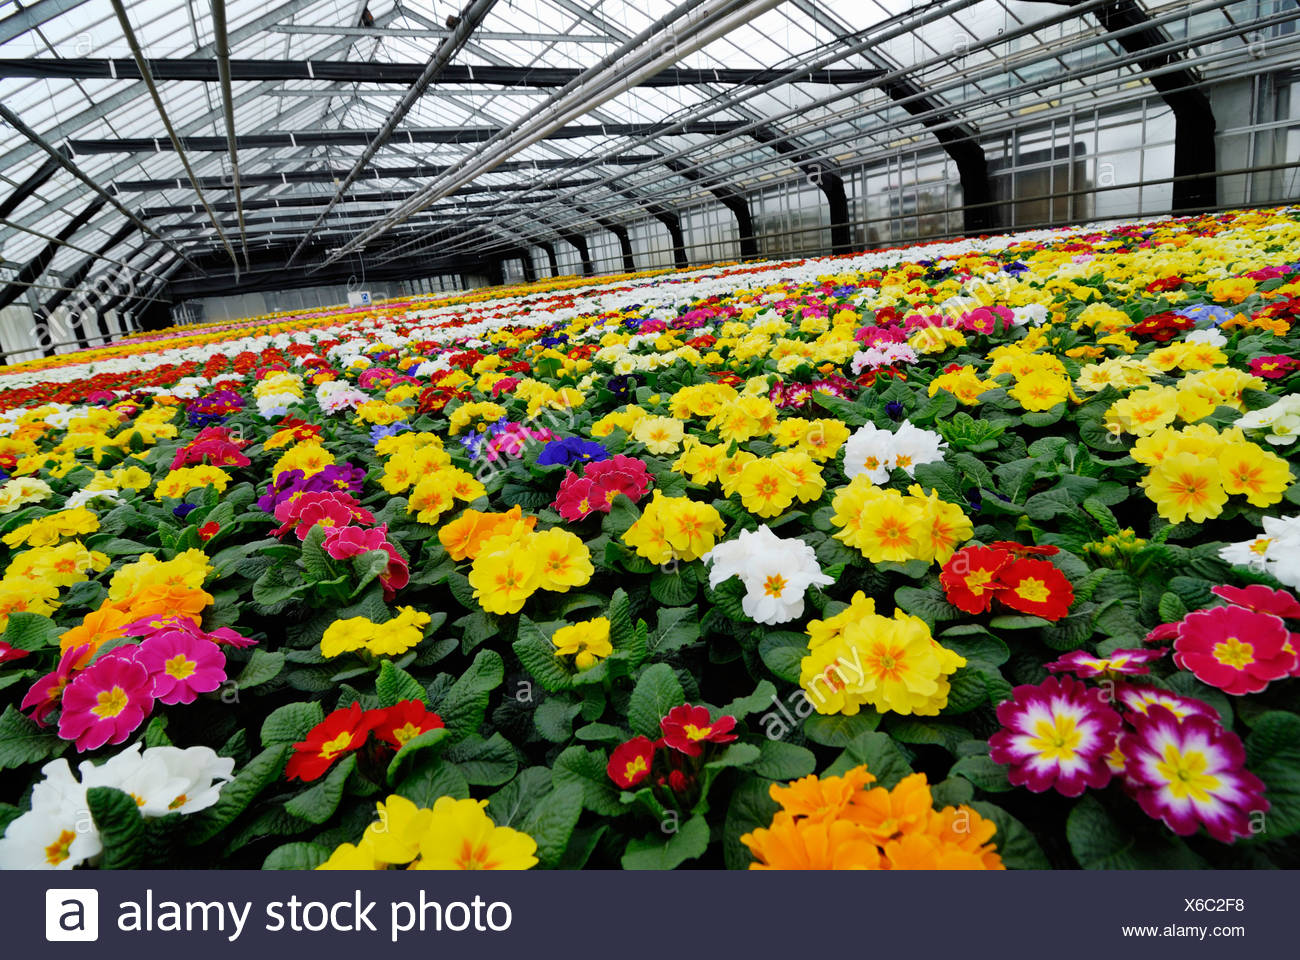 Colorful primroses in a greenhouse - Stock Image